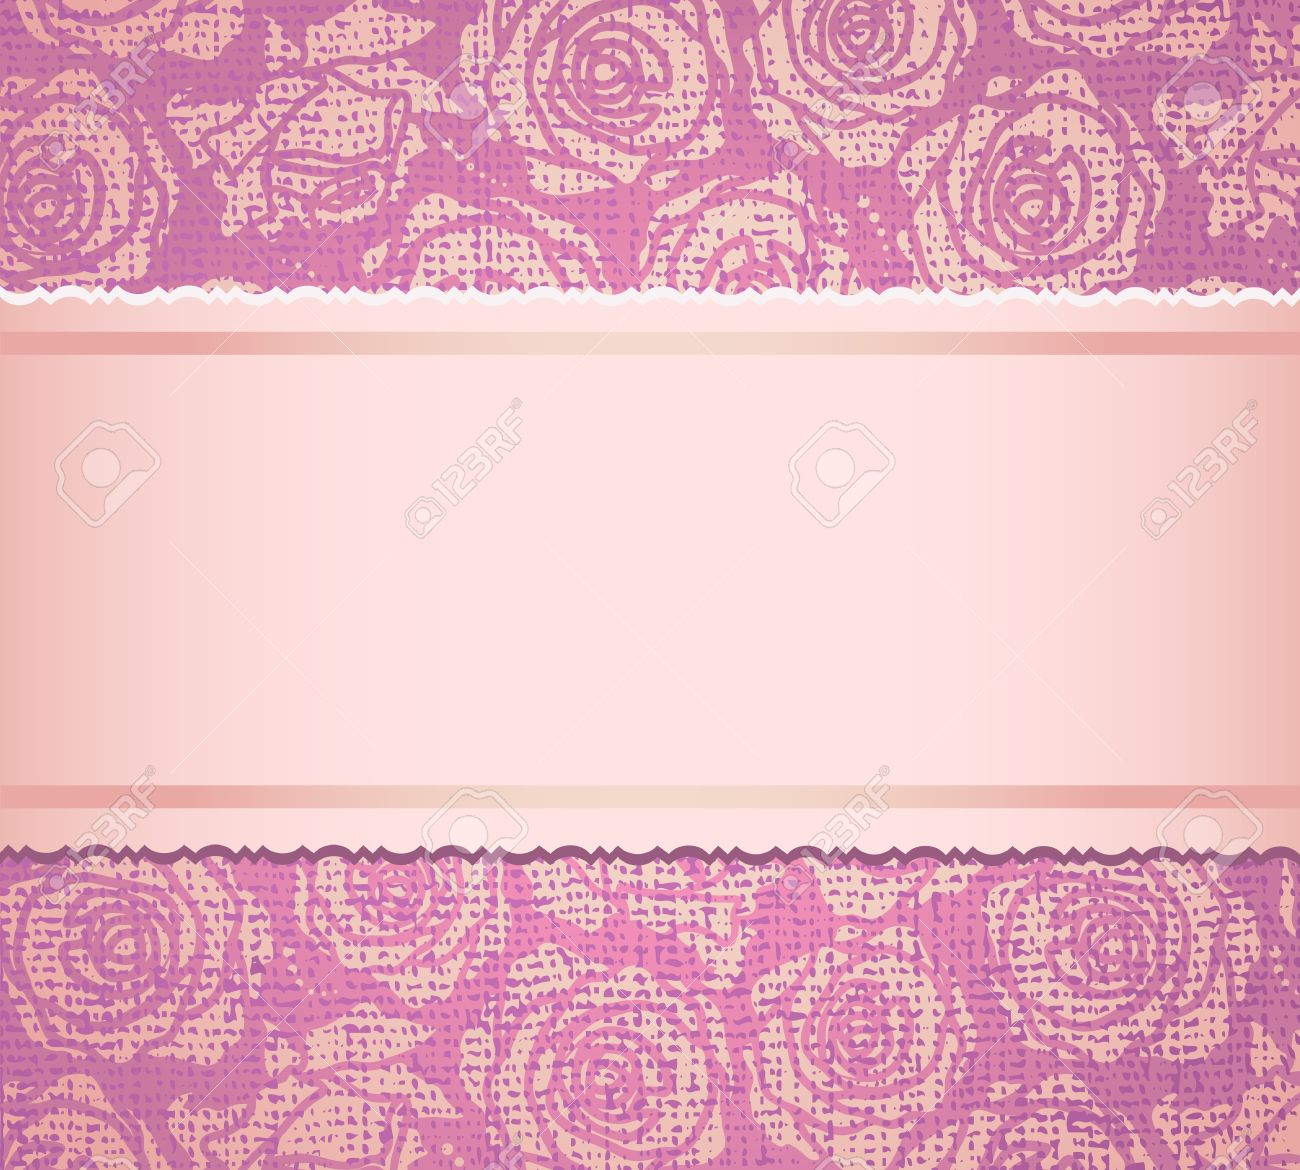 Ornate Background With Fabric Imitation With Pink Roses Invitation ...